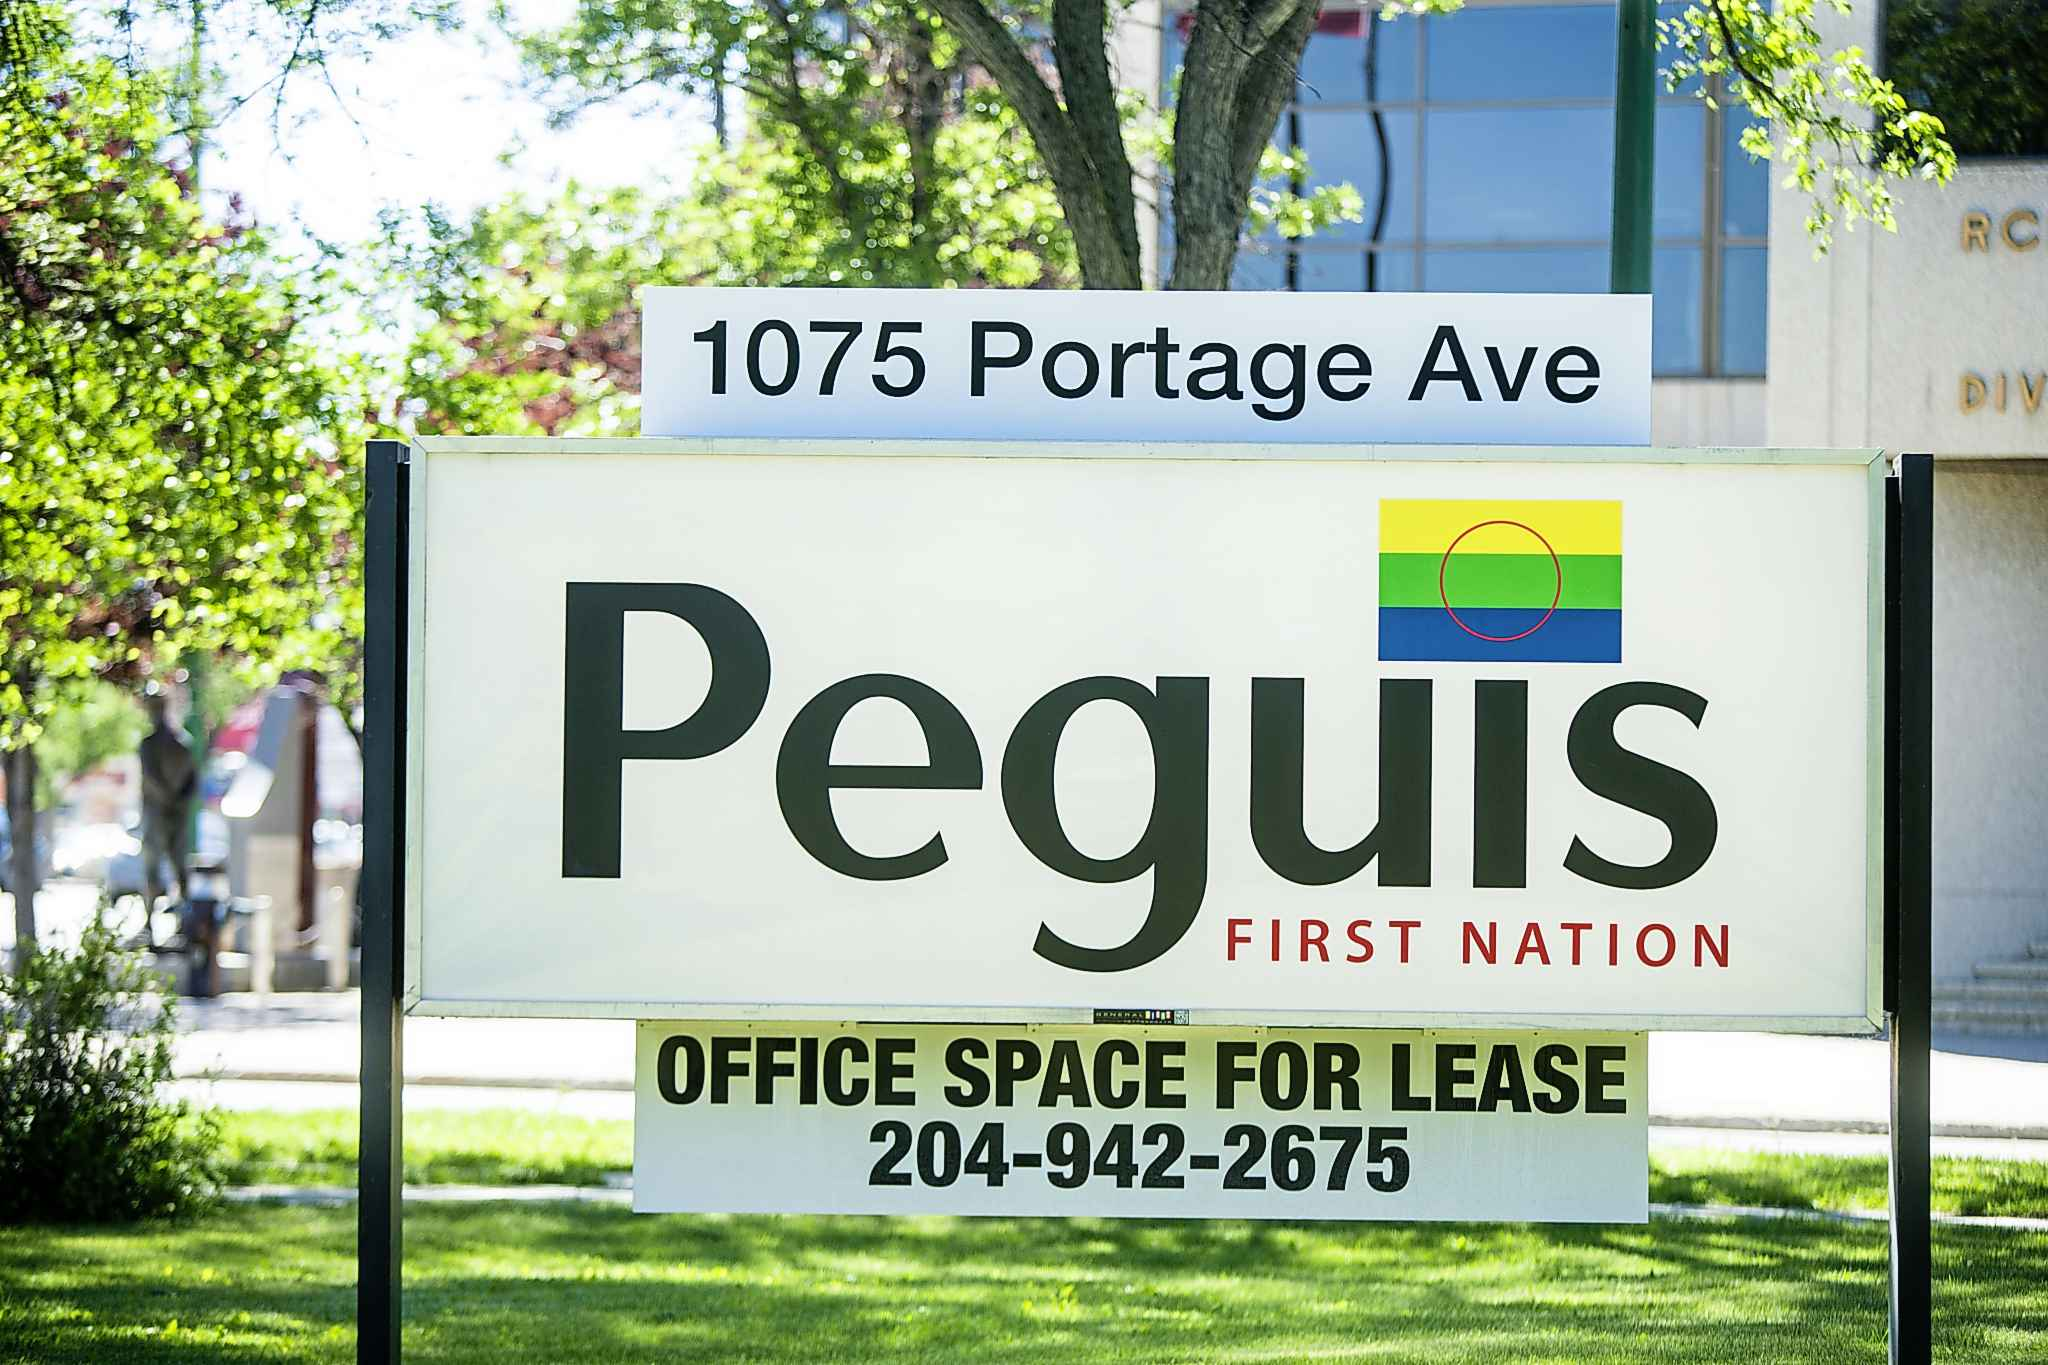 Peguis has invested in 1075 Portage Ave. by renovating it, and bringing in tenants, resulting in jobs and money for the city.